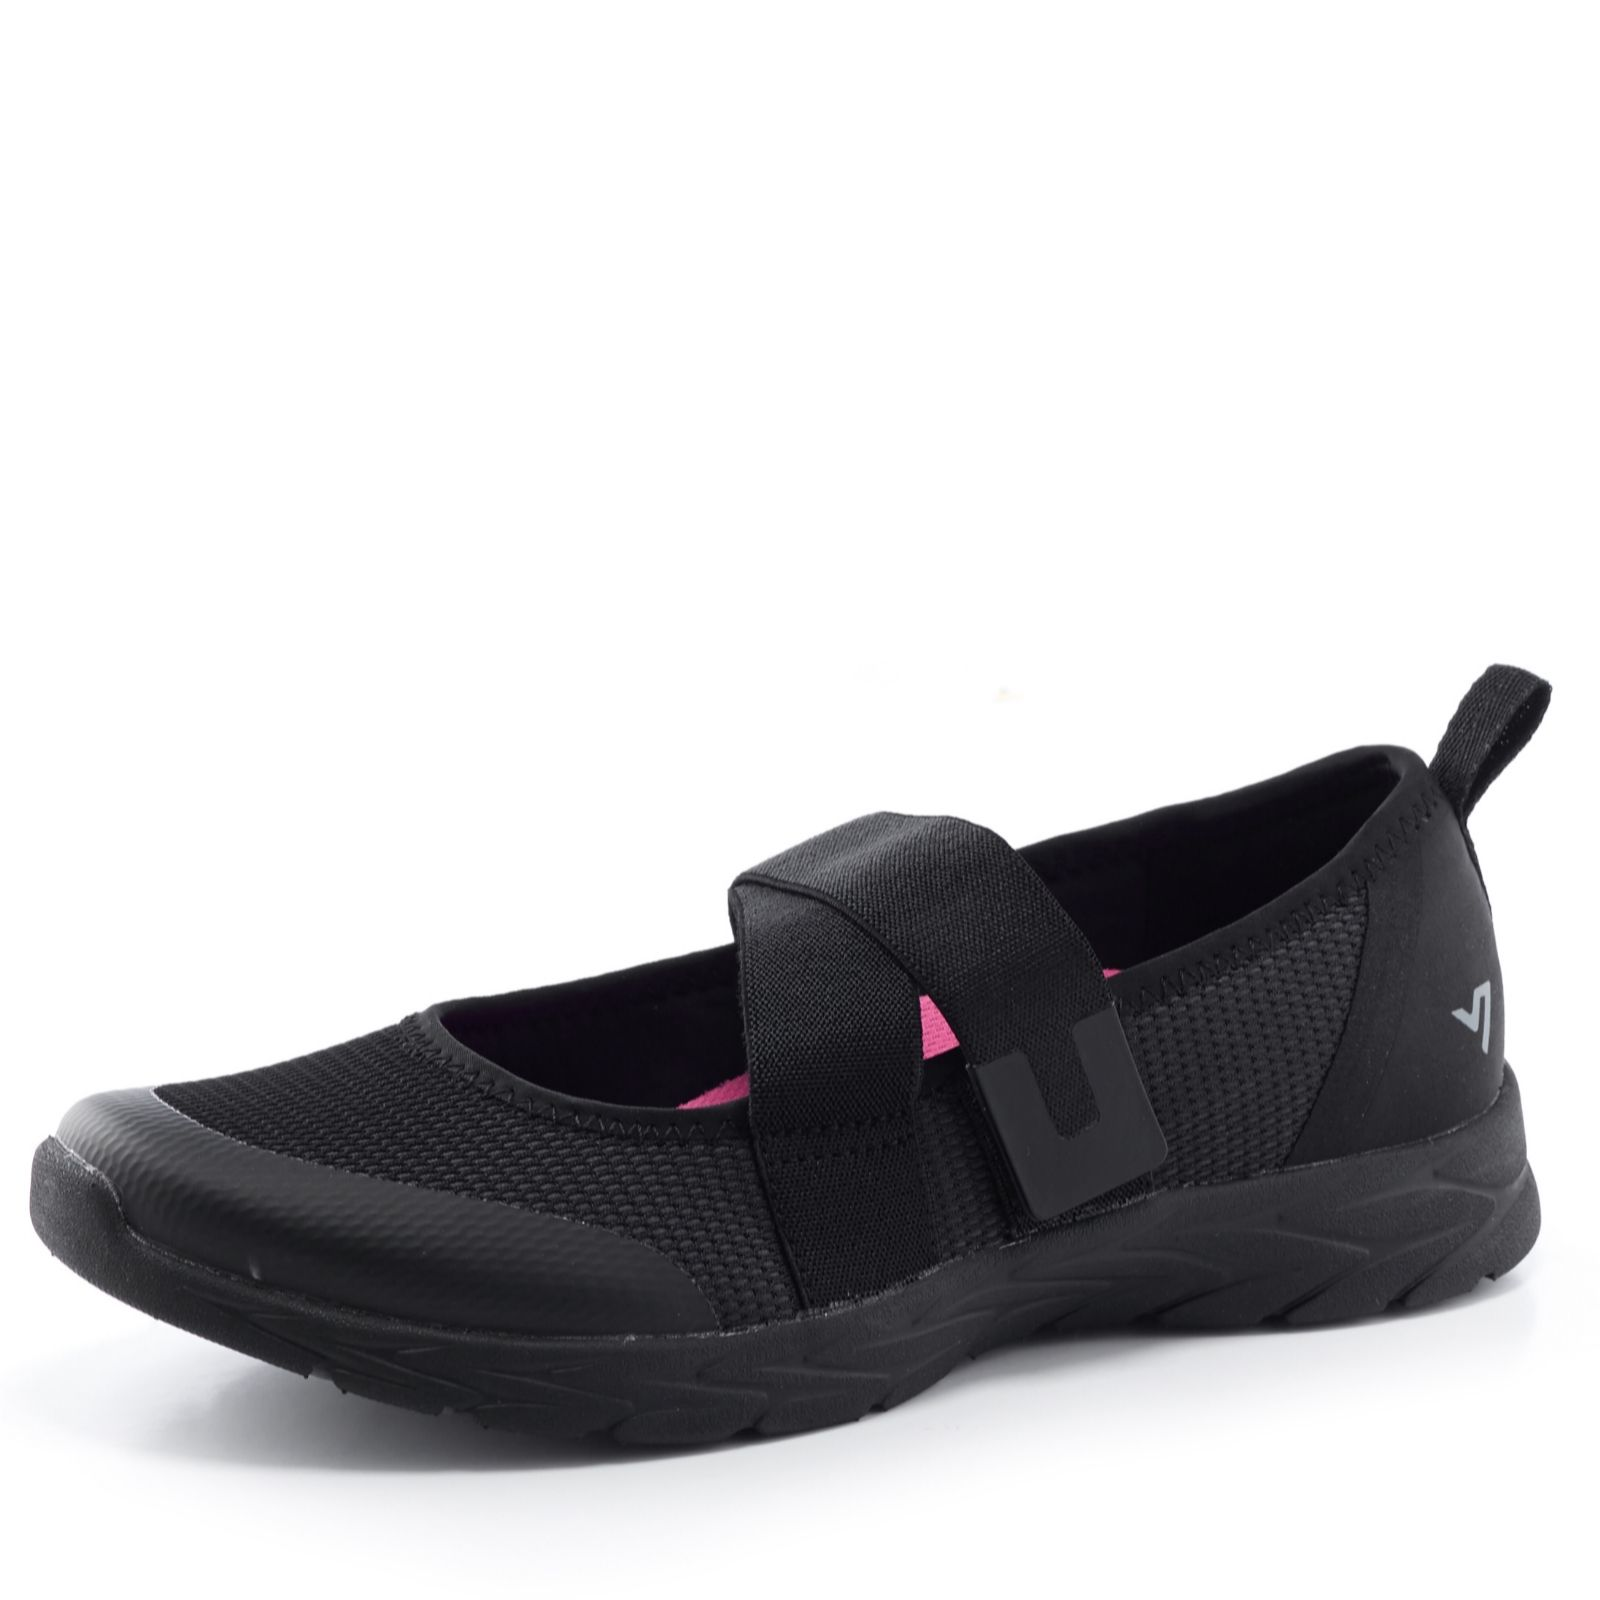 63e708879d93 Vionic Orthotic Brisk Pace Athletic Mary Jane Casual Shoe w  FMT ...